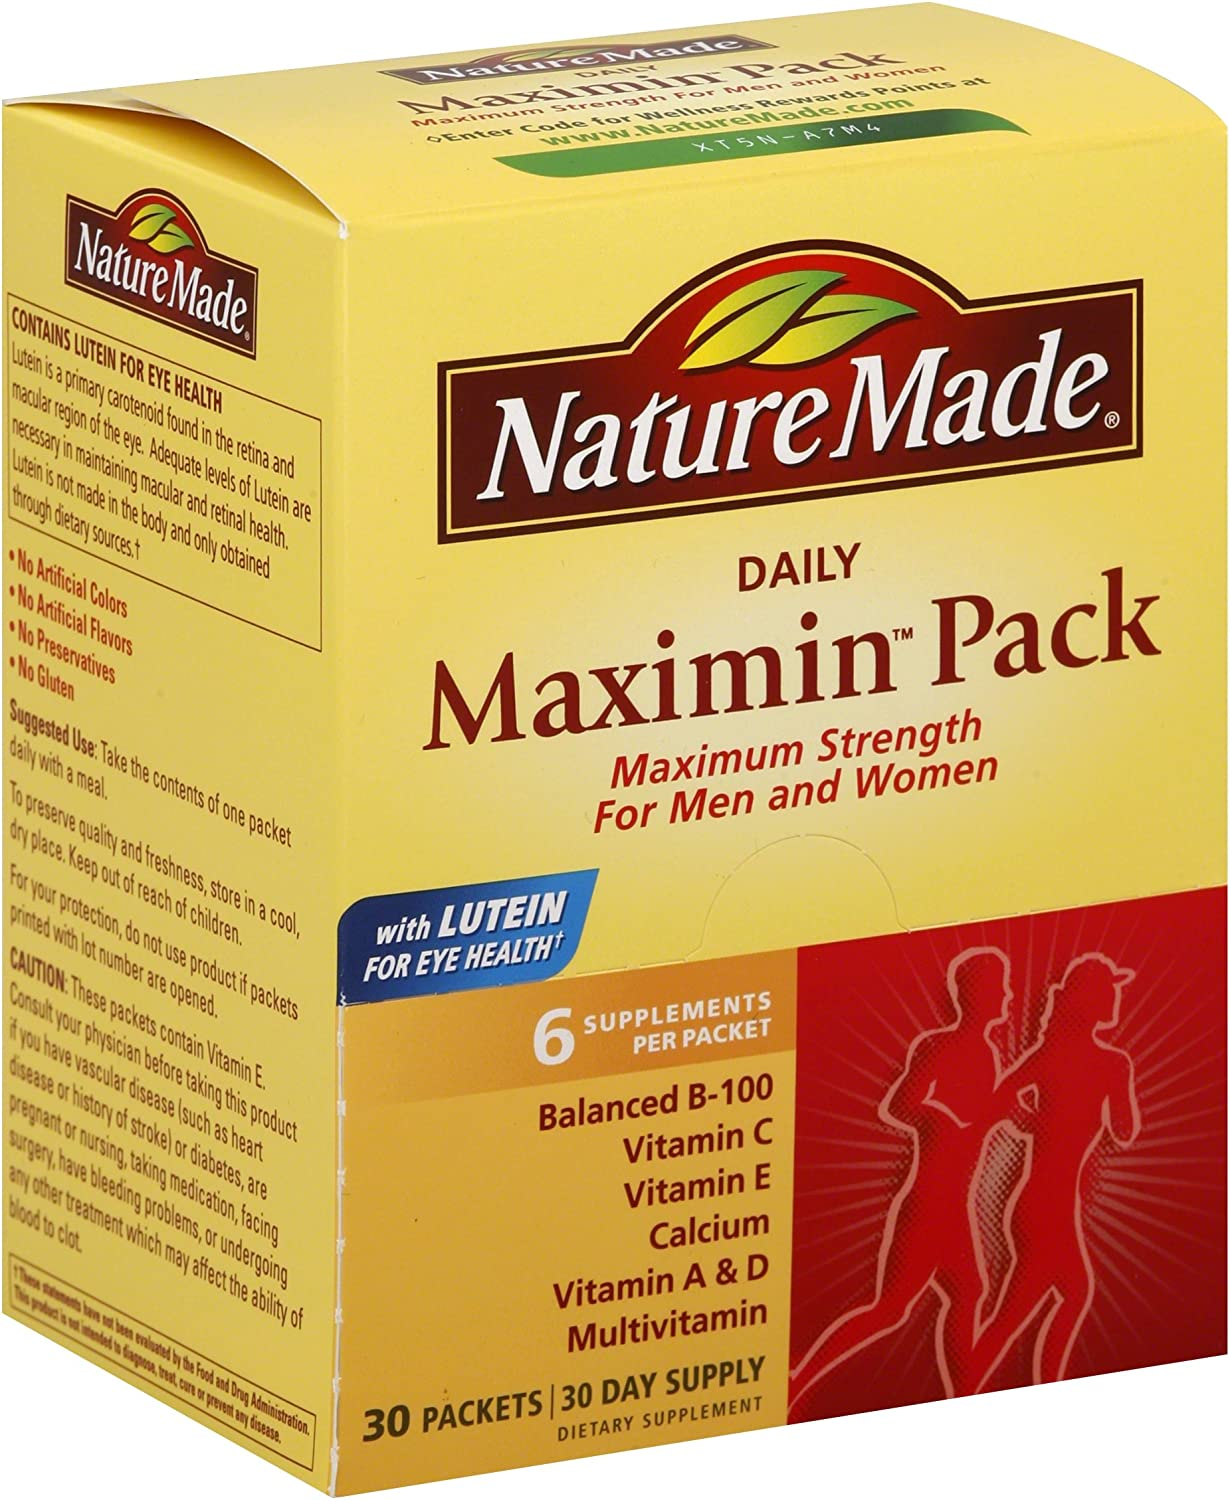 Nature Made Maximin Pack 30 Limited Superlatite Special Price 2 of Packets